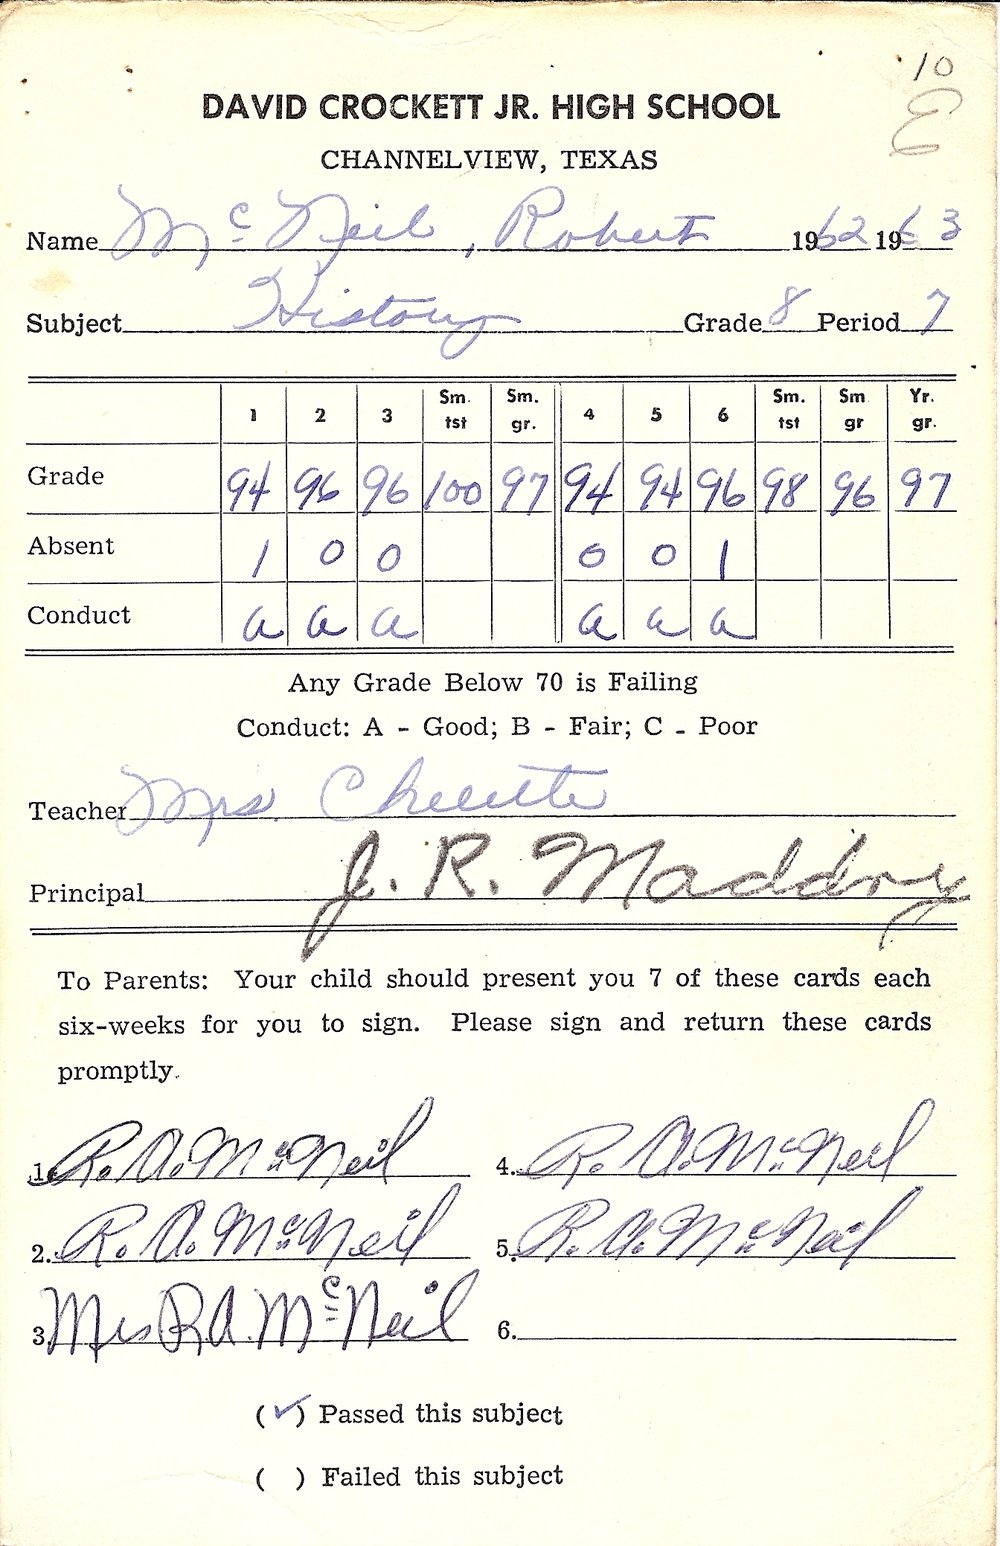 Bob McNeil - 1963 - Age 14 - Eighth Grade History Report Card